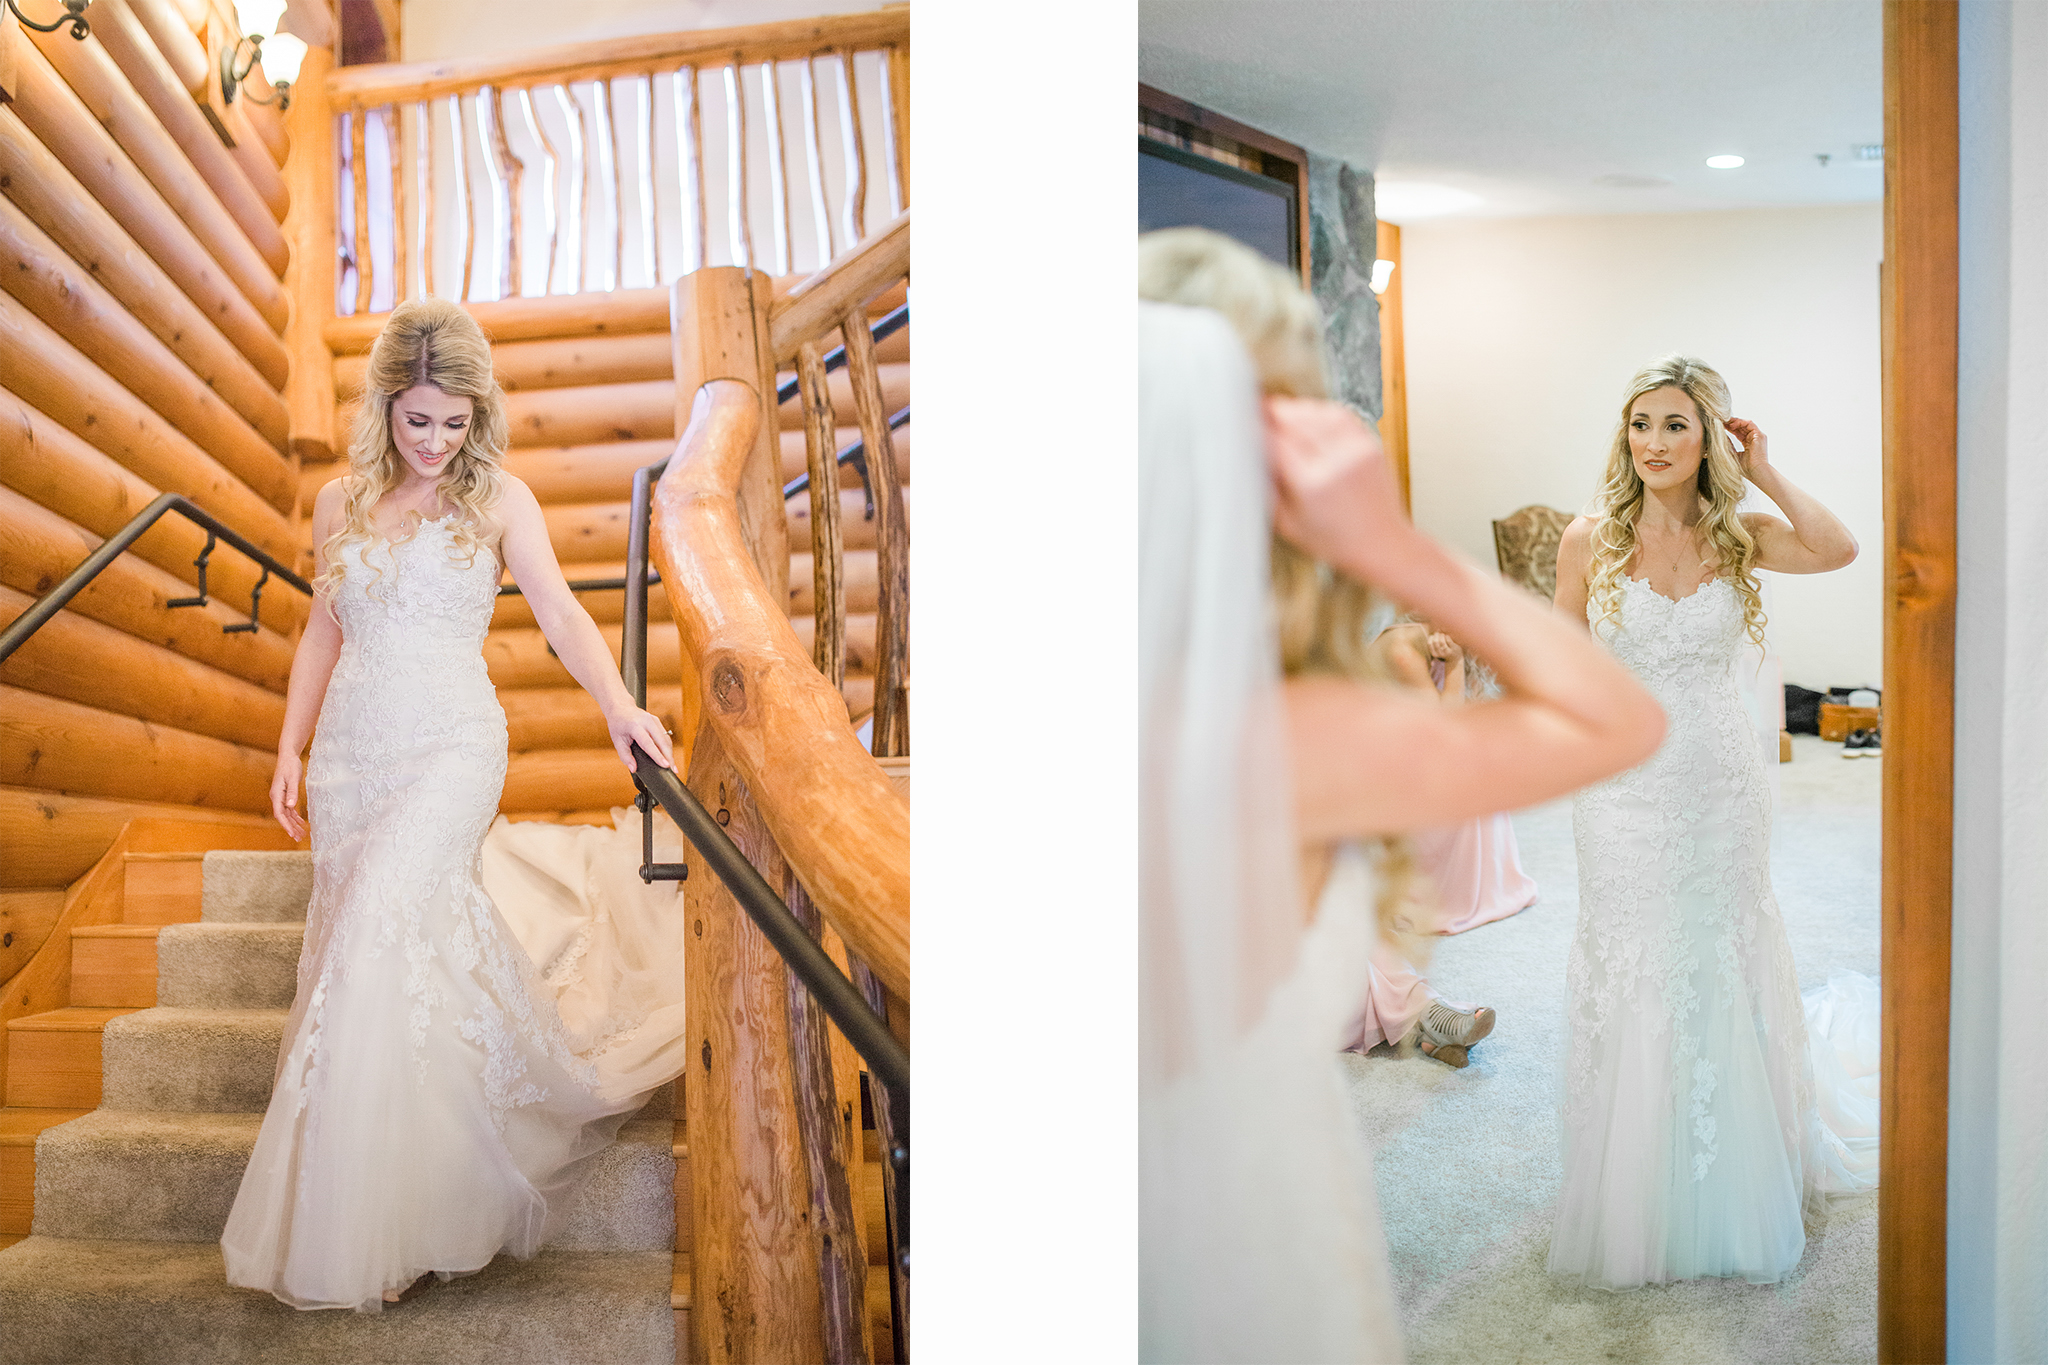 Ridgefield, WA wedding photographer, Summit Grove Lodge wedding, bride getting ready photos